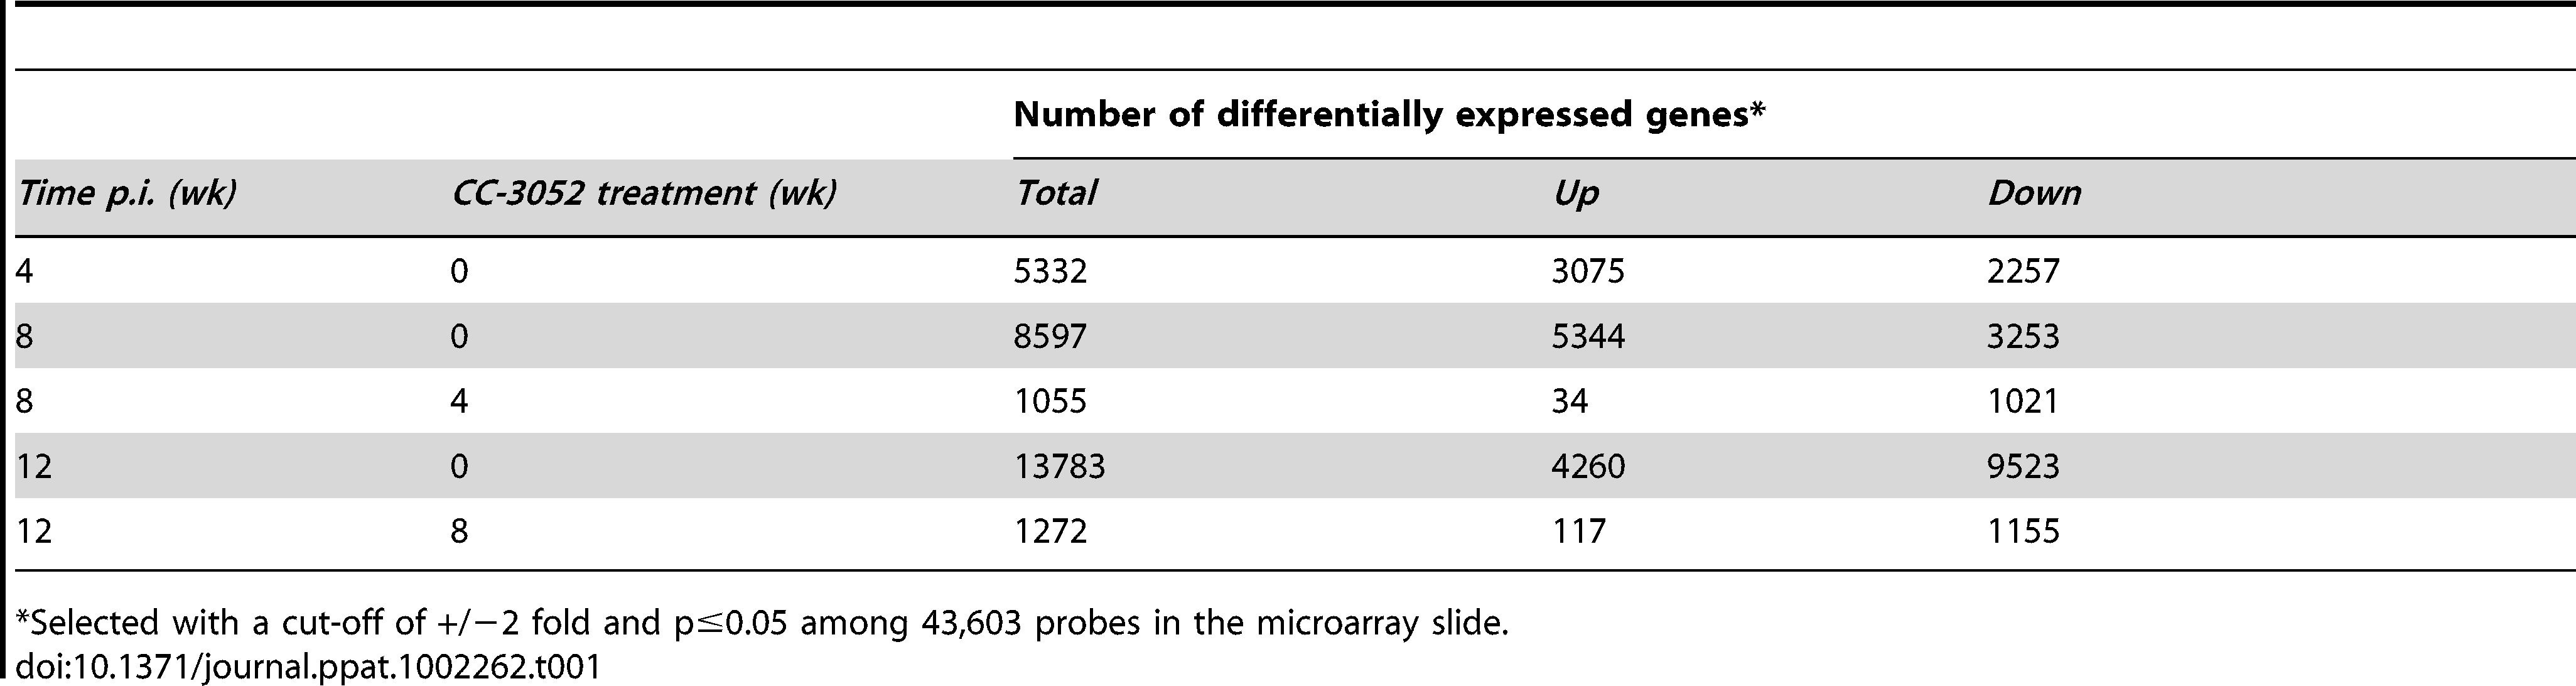 Number of differentially expressed host genes in <i>Mtb</i> infected rabbit lungs with or without CC-3052 treatment.